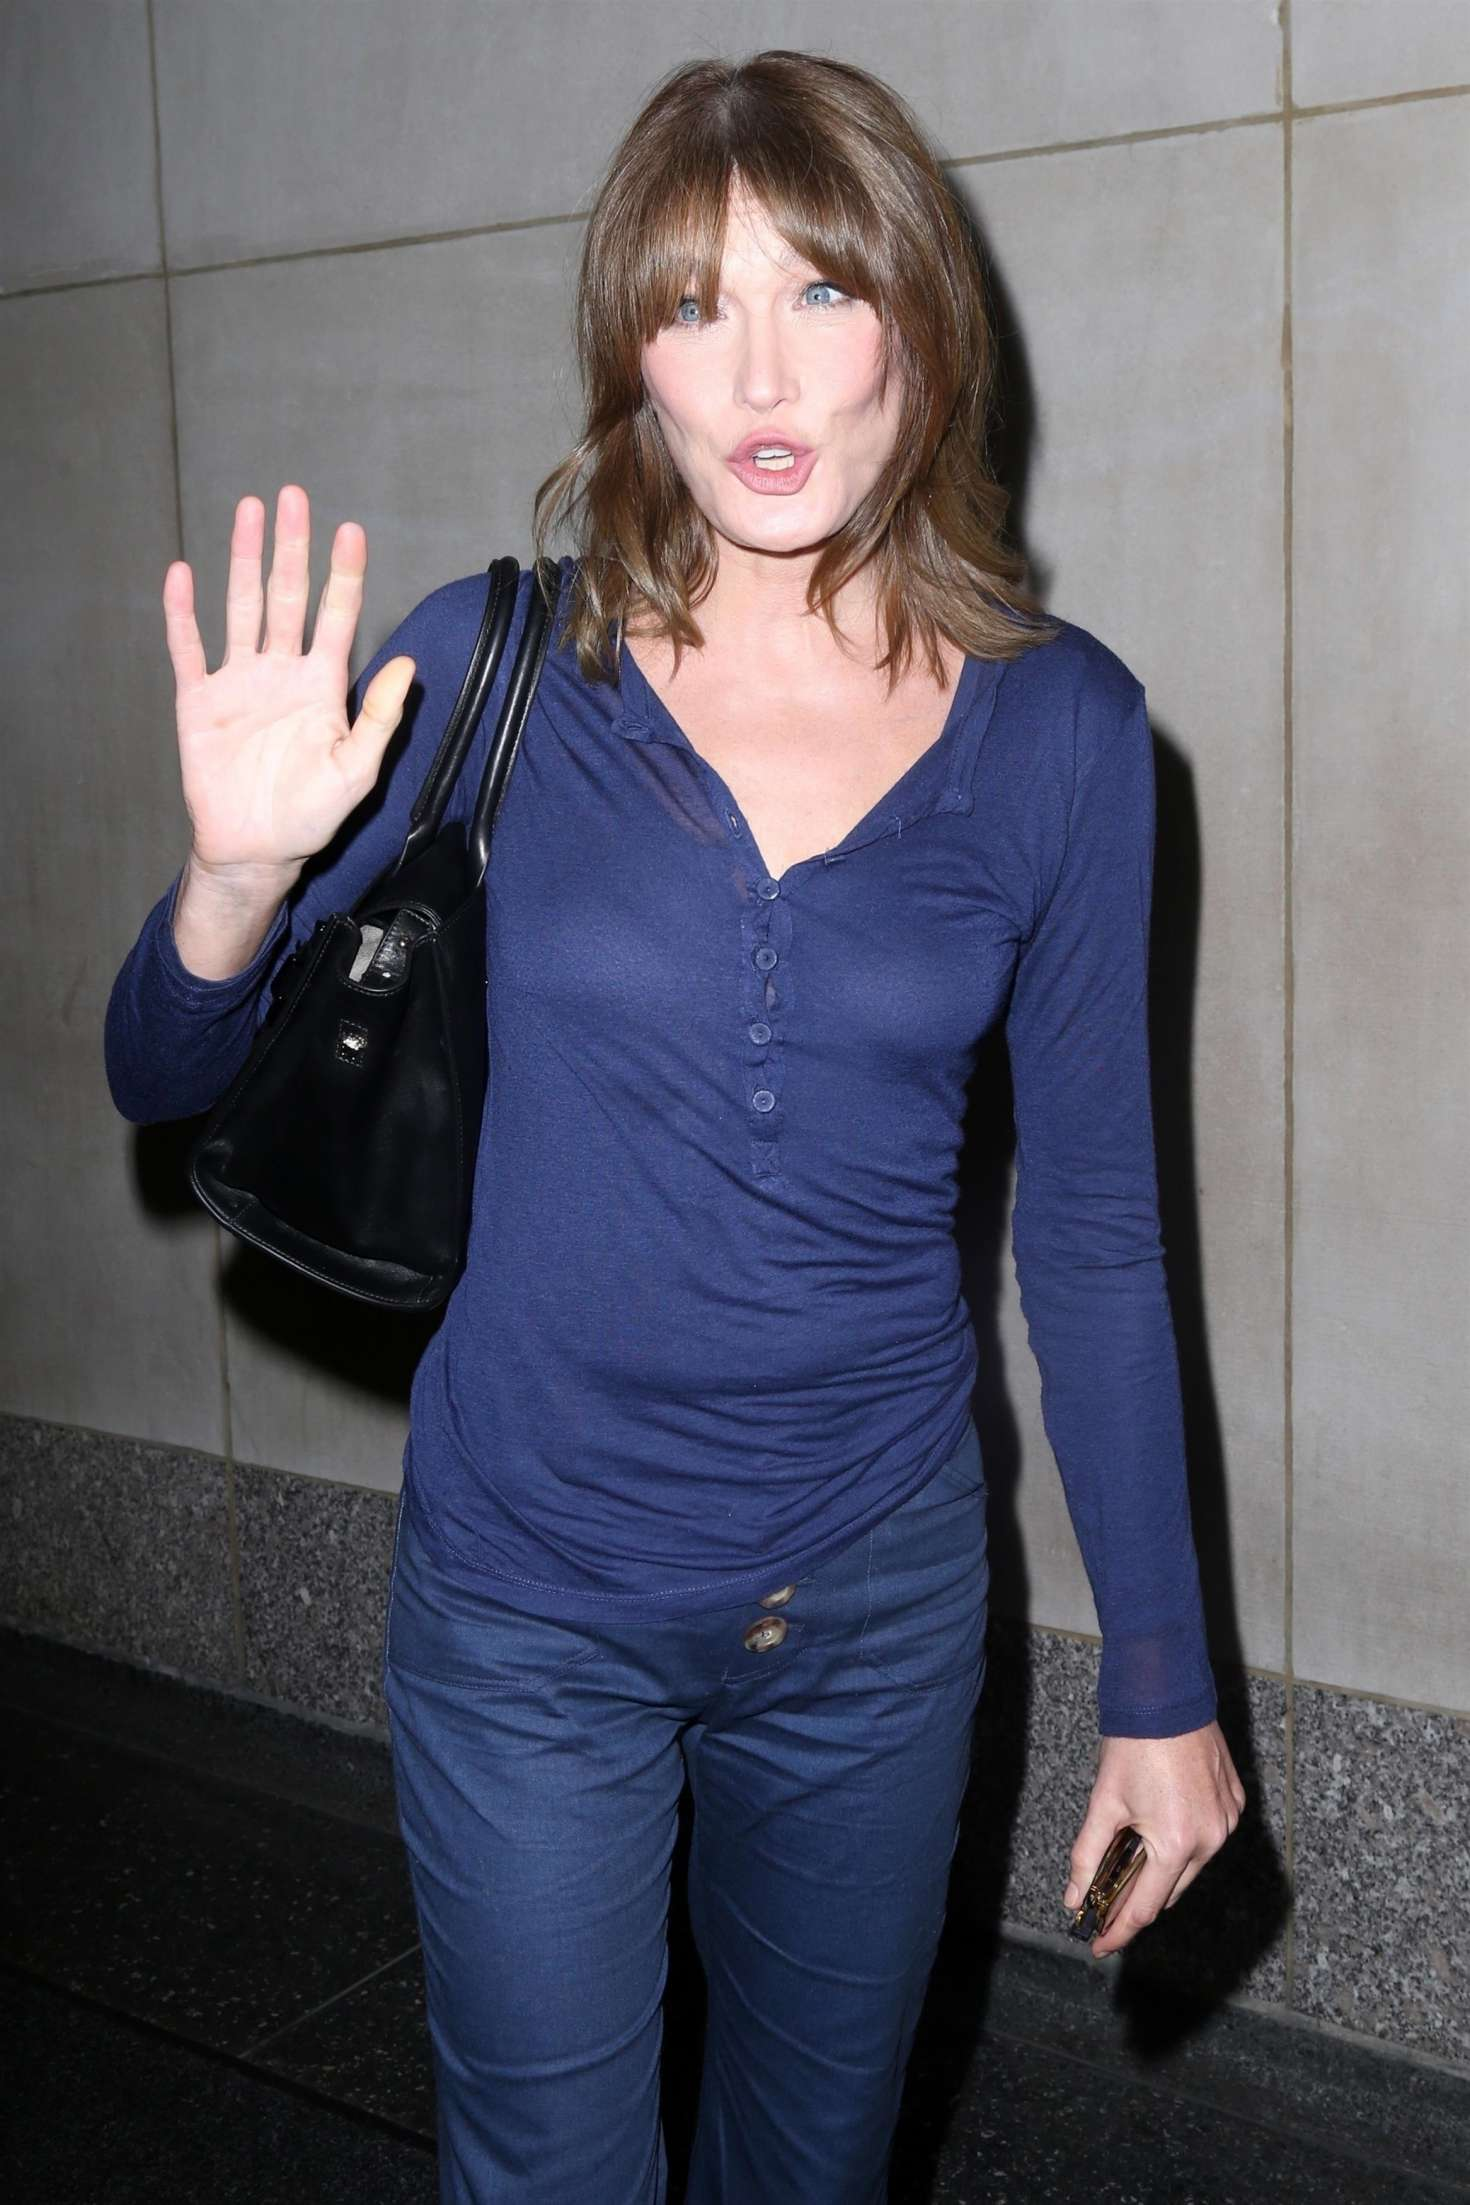 Carla Bruni on the 'Today' show in New York City